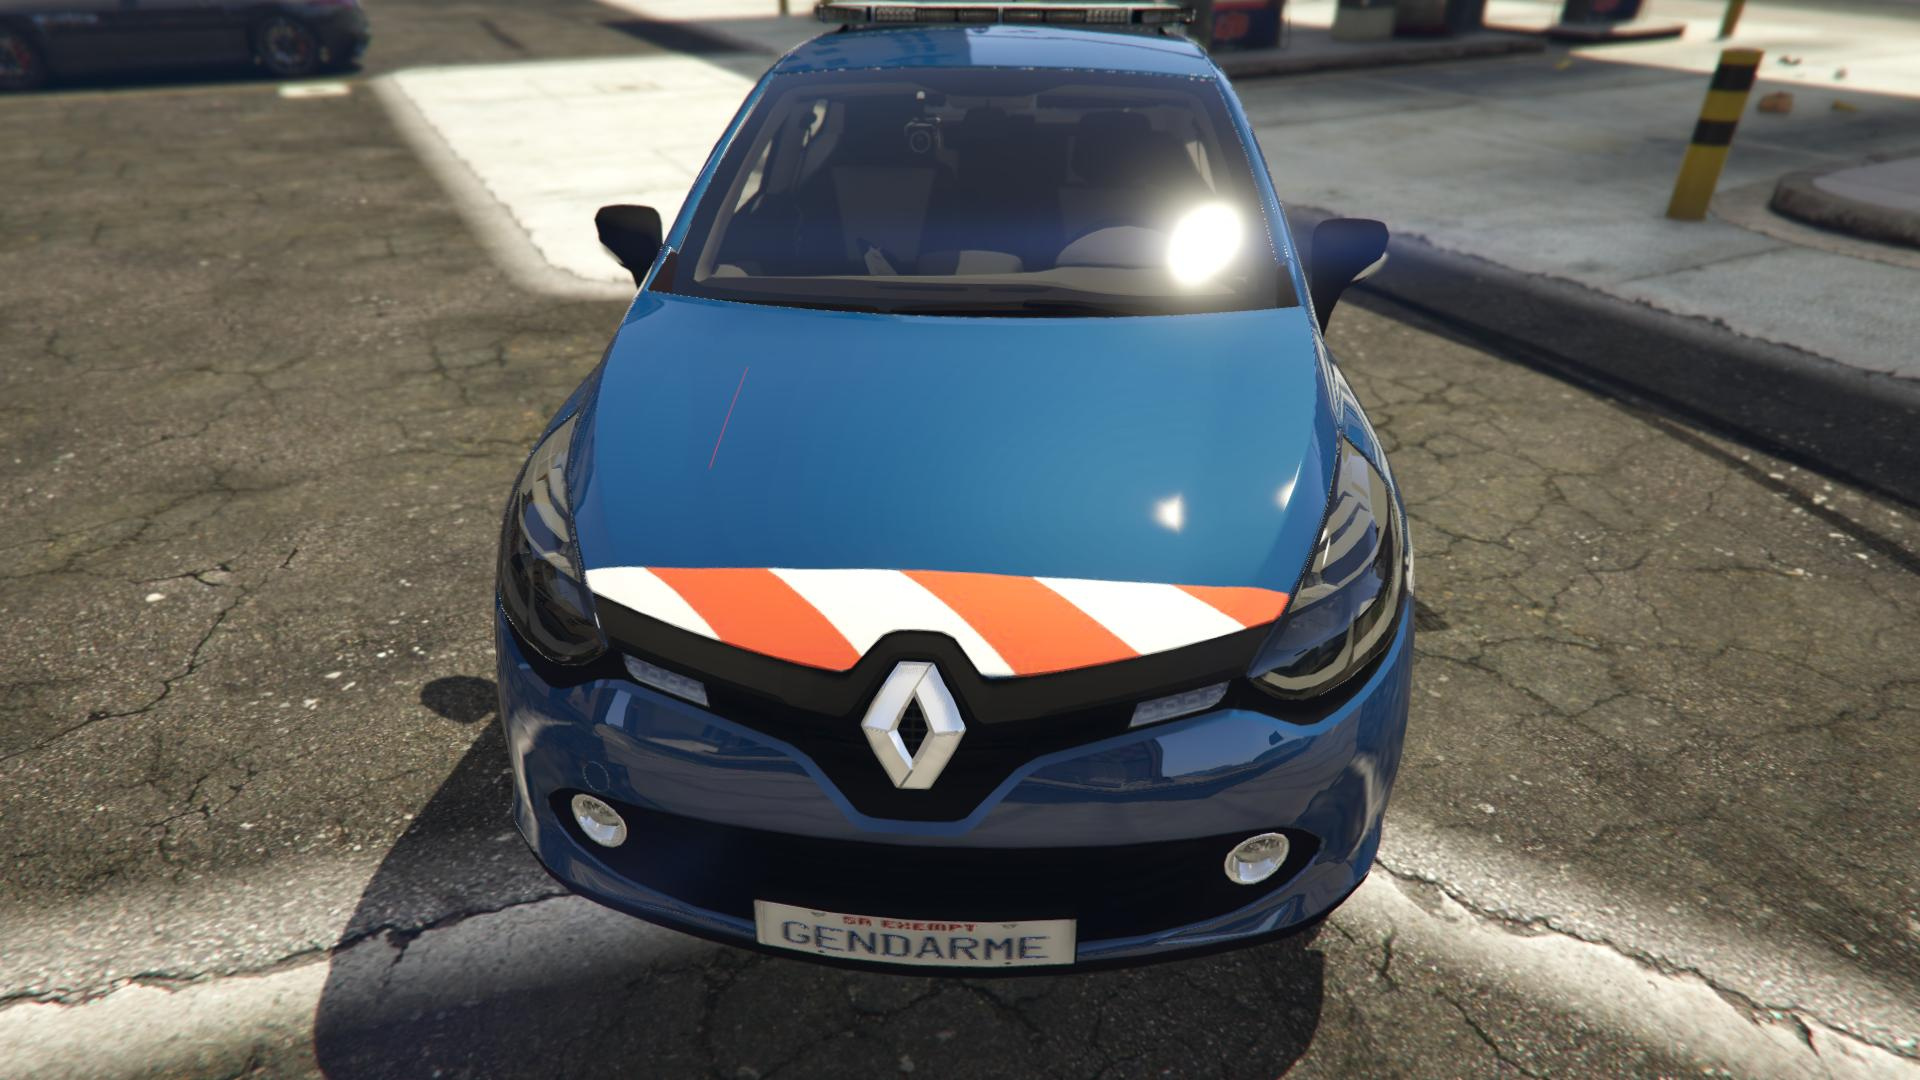 renault clio 4 gendarmerie bande rouge gta5. Black Bedroom Furniture Sets. Home Design Ideas